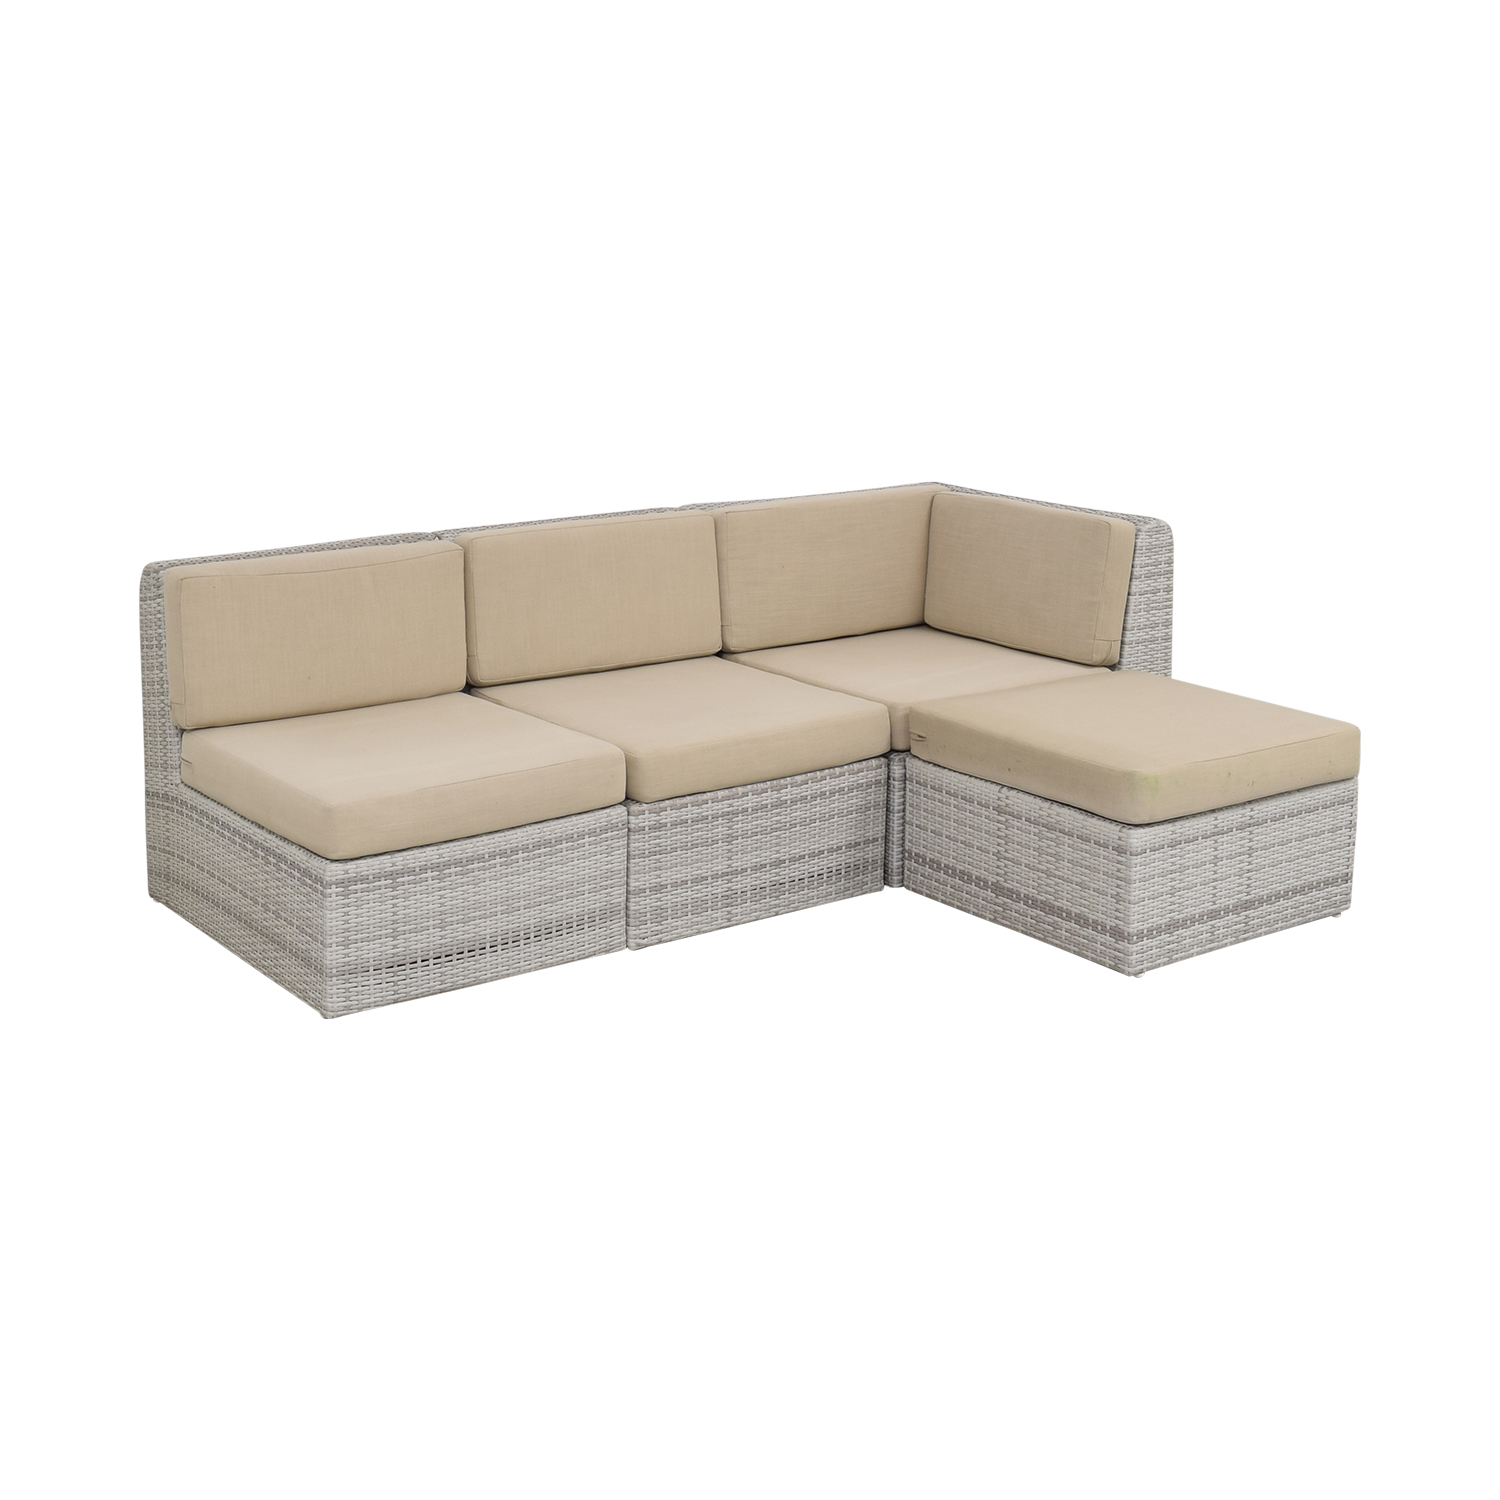 CB2 CB2 Ebb Outdoor Sectional Sofa on sale